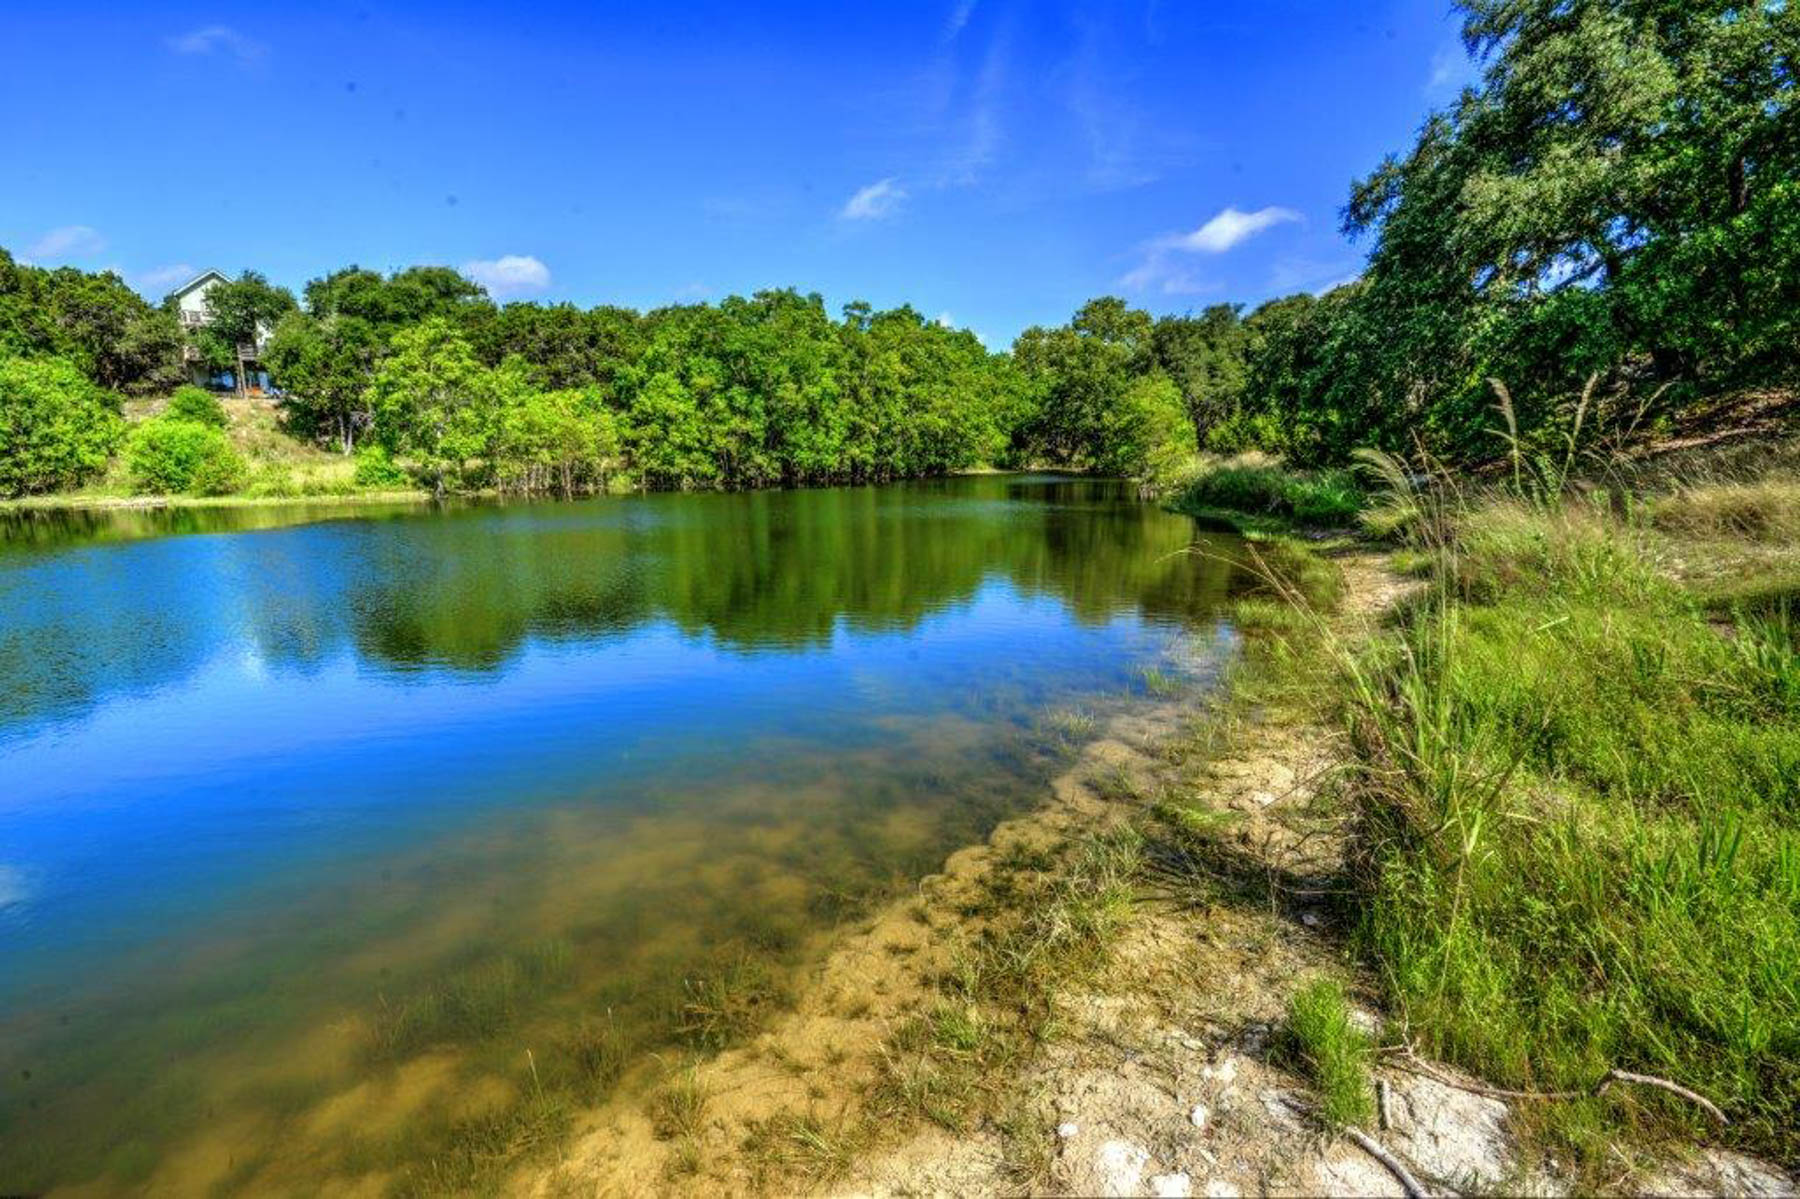 Terreno por un Venta en Canyon Lake Lakefront Lots 1580 Canyon Lake Dr Canyon Lake, Texas 78133 Estados Unidos